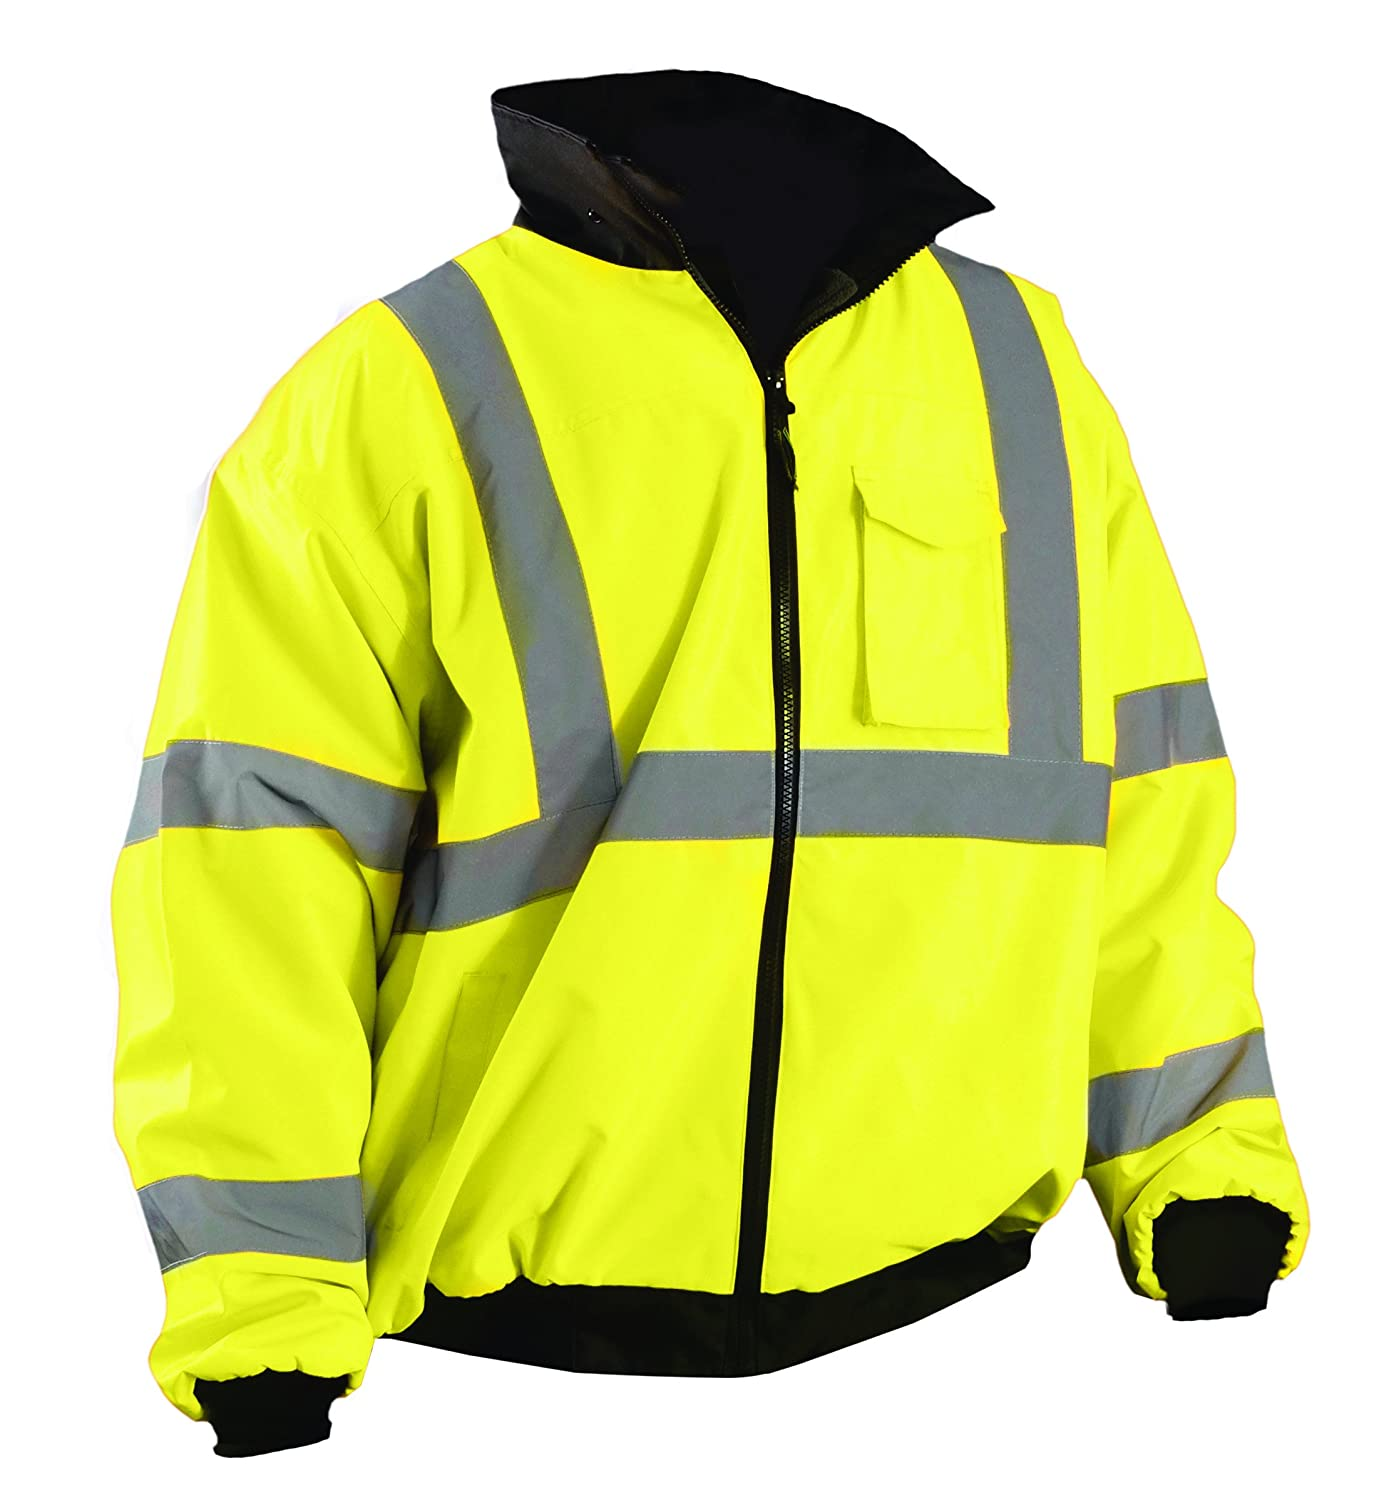 OccuNomix Bomber Jacket, Yes Insulated, Yellow, 3XL